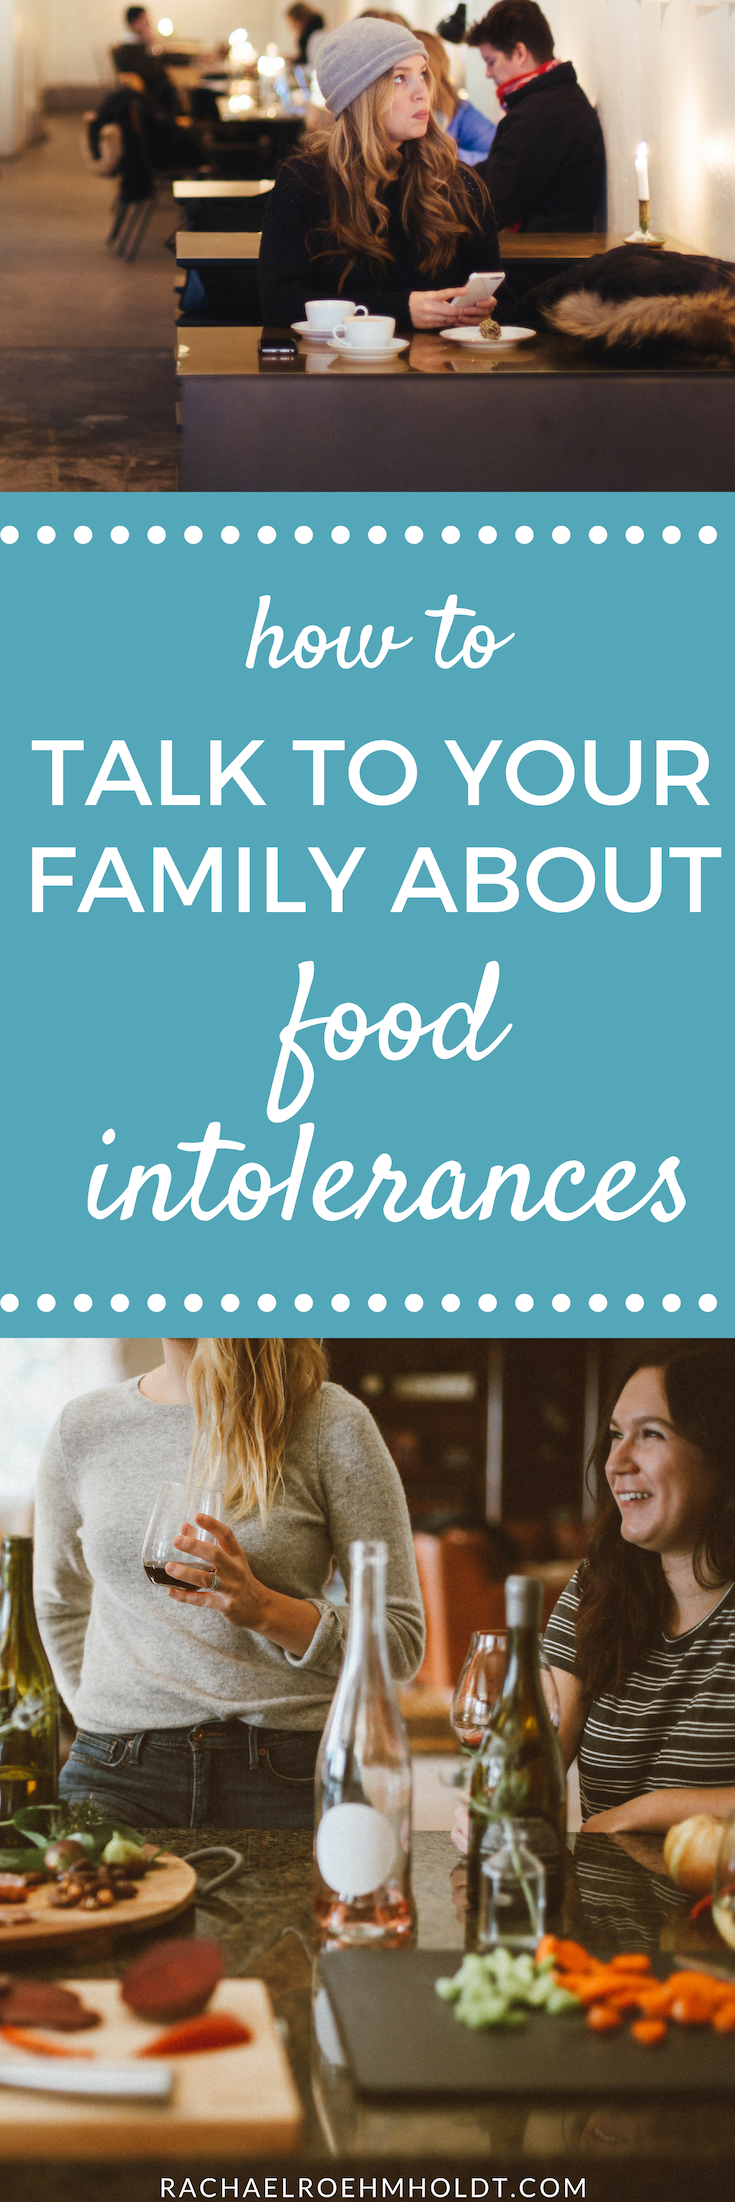 If you just learned about newly discovered food intolerances, you might be wondering how to talk to your family about them, especially around family meals and dinners. Check out this post to learn just how to tackle on these tricky conversations.